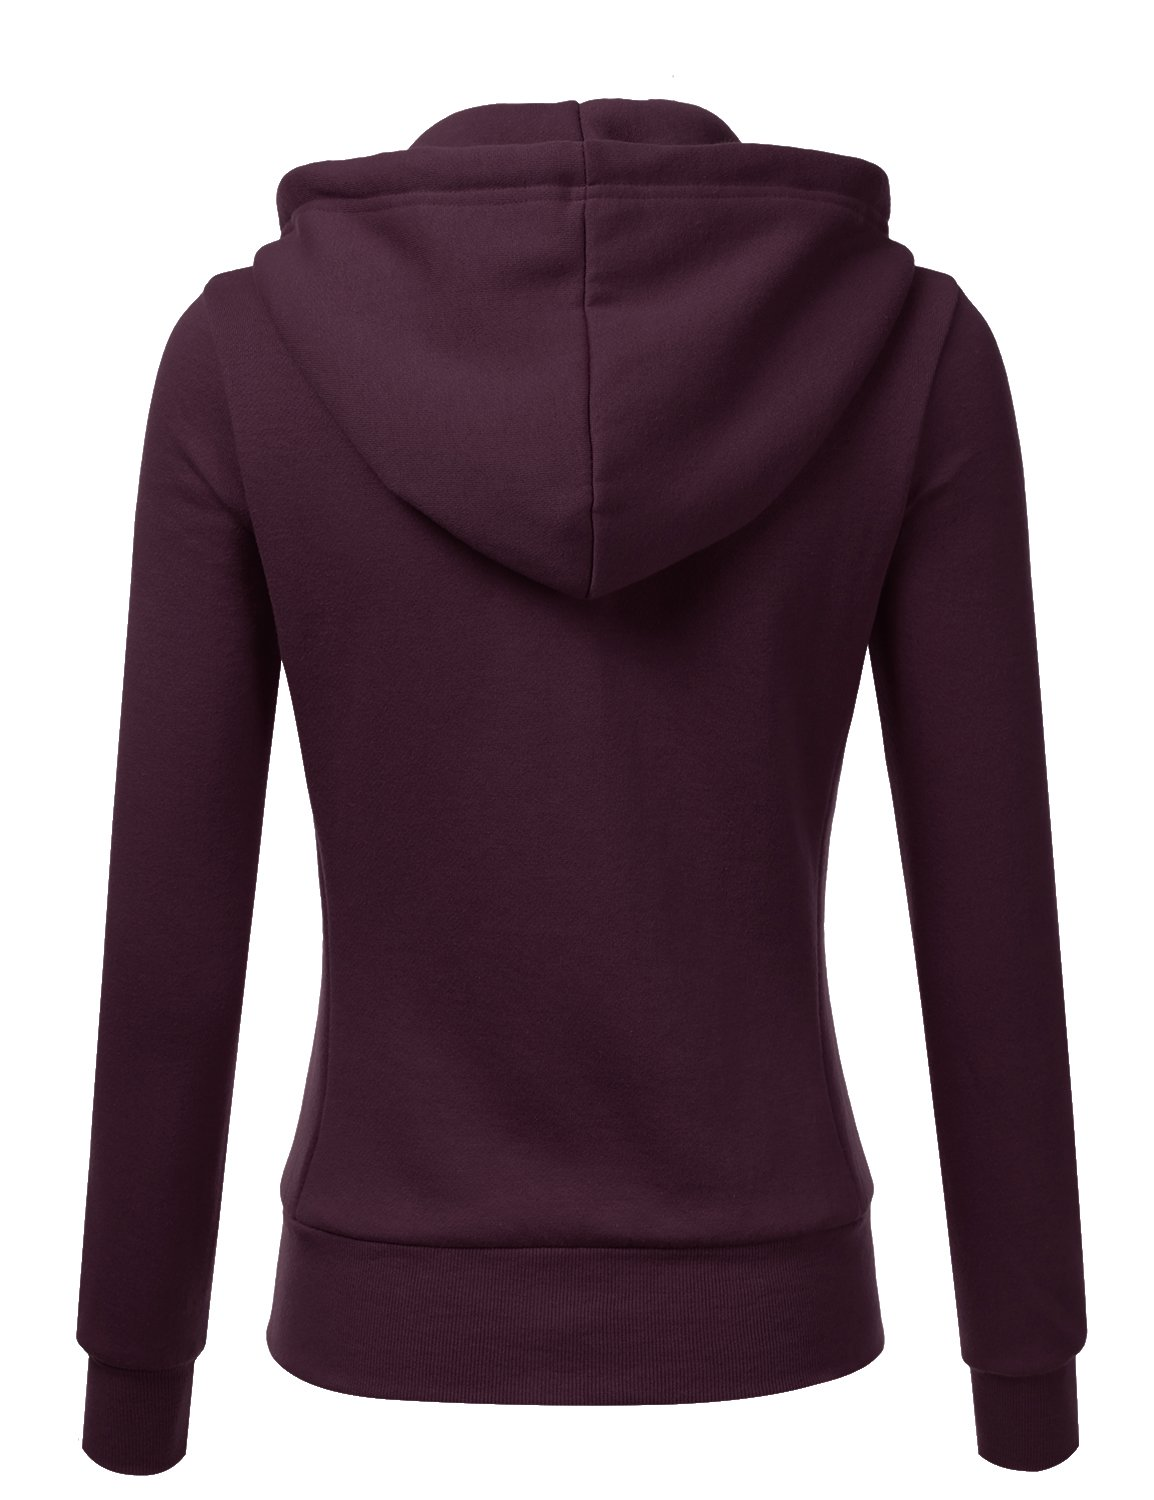 Doublju Lightweight Thin Zip-Up Hoodie Jacket for Women with Plus Size Plum Large by Doublju (Image #3)